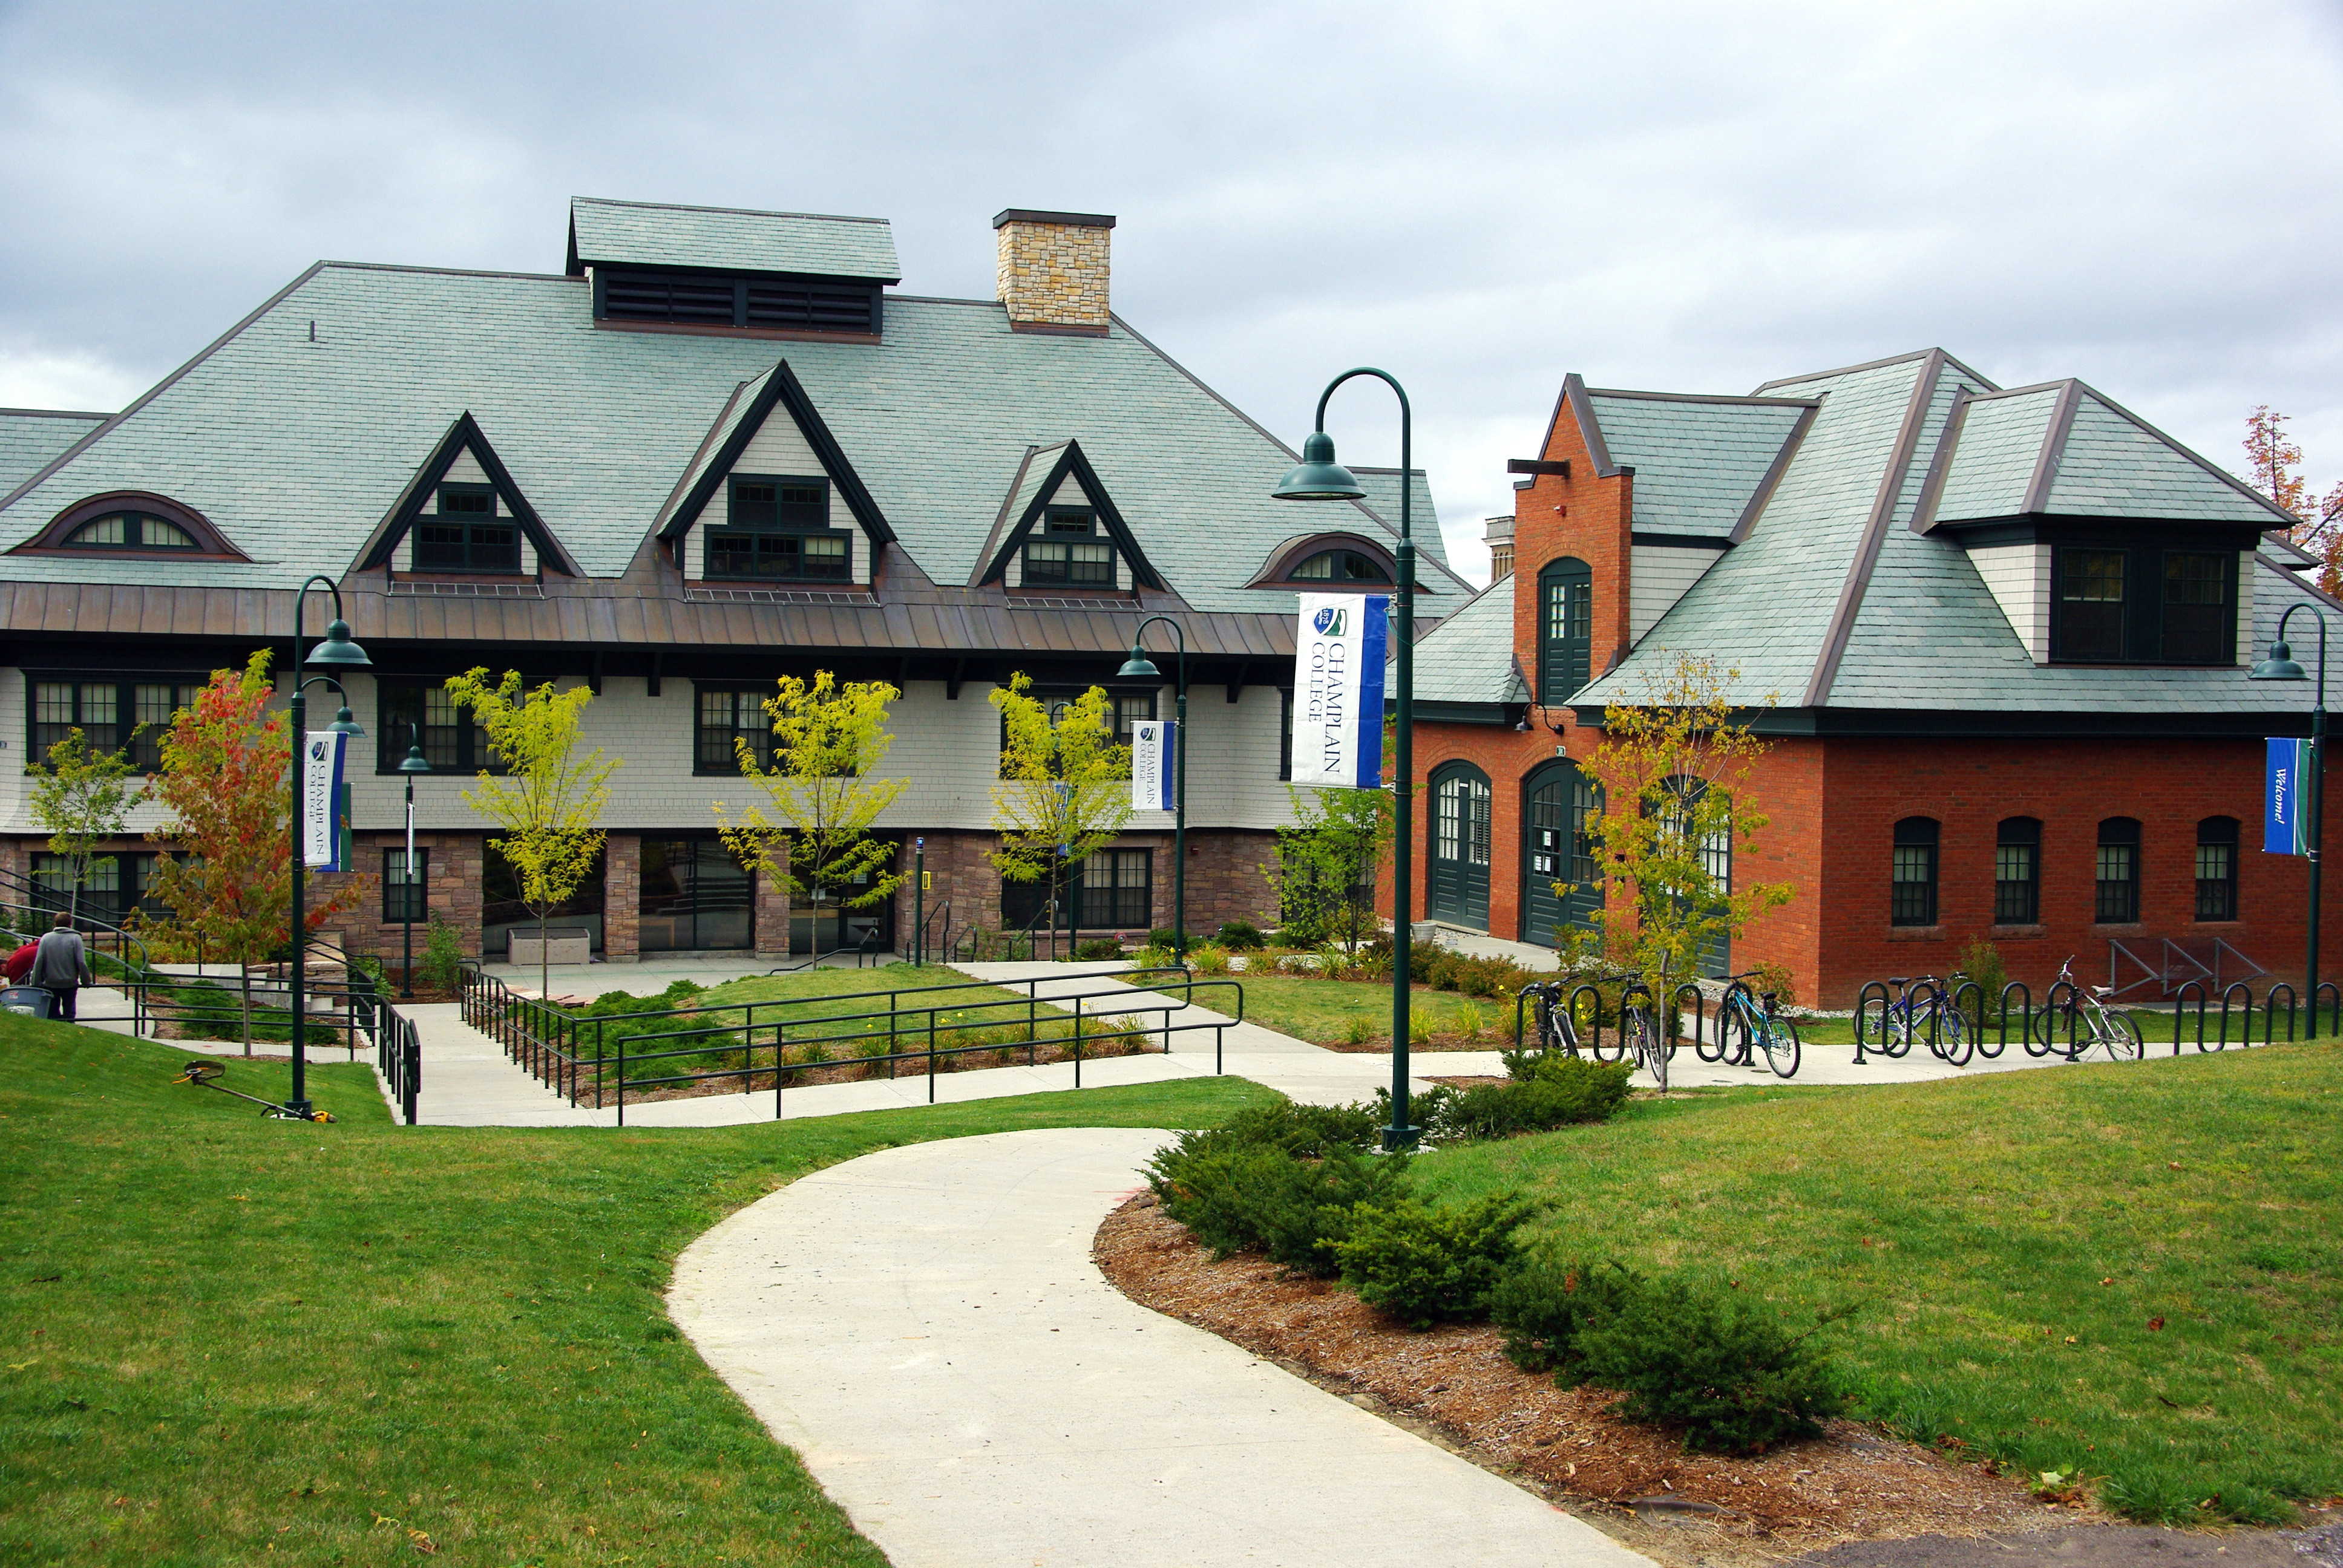 Residence halls at Champlain College became the temporary homes for various groups over the summer months.